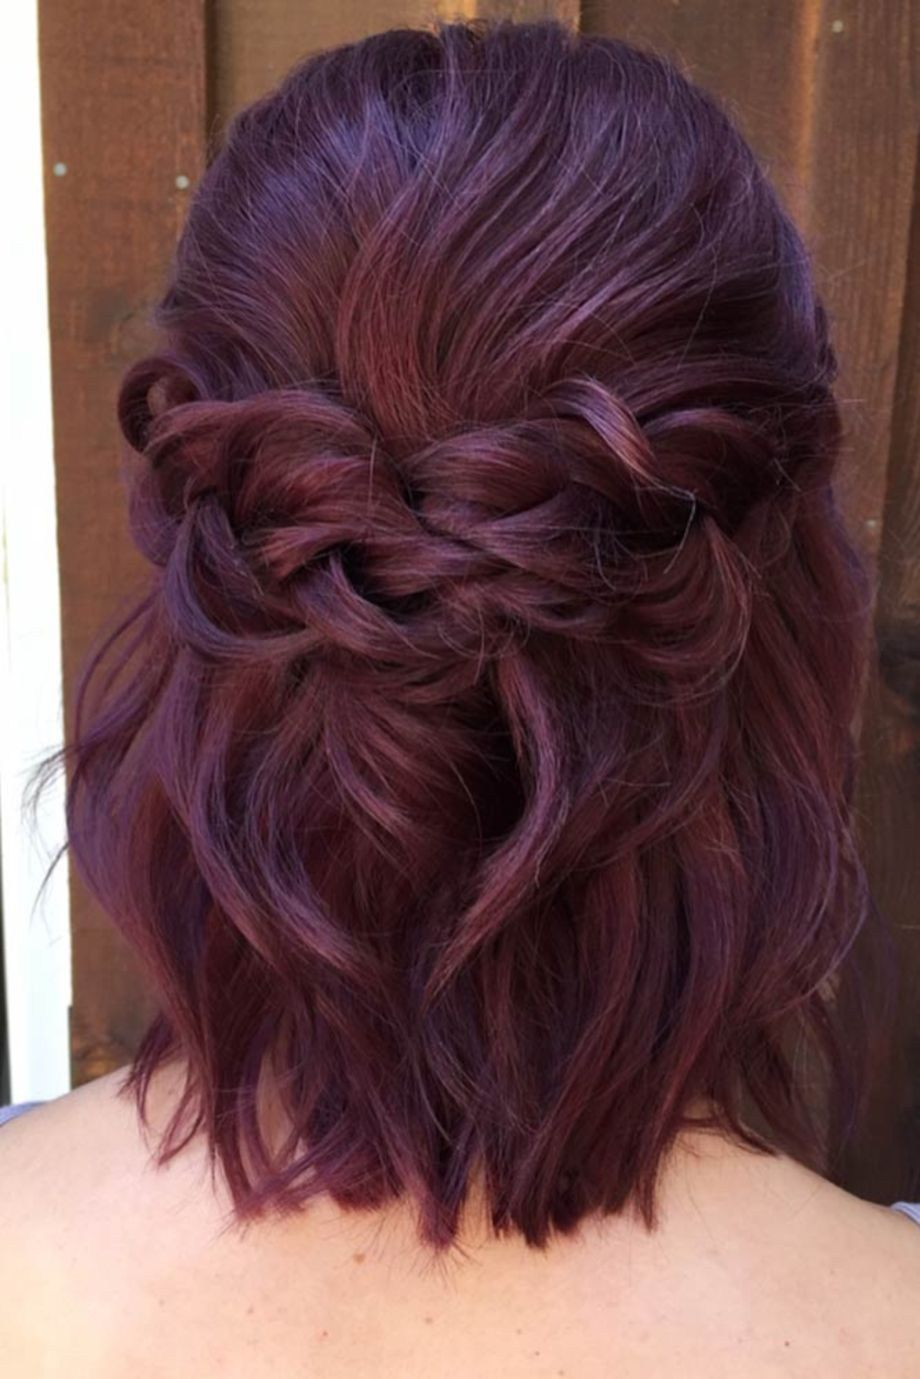 Stunning Wedding Hairstyles Ideas For Shoulder Length Hair 28 Weddinghairstyles Braided Hairstyles For Wedding Short Wedding Hair Hair Styles